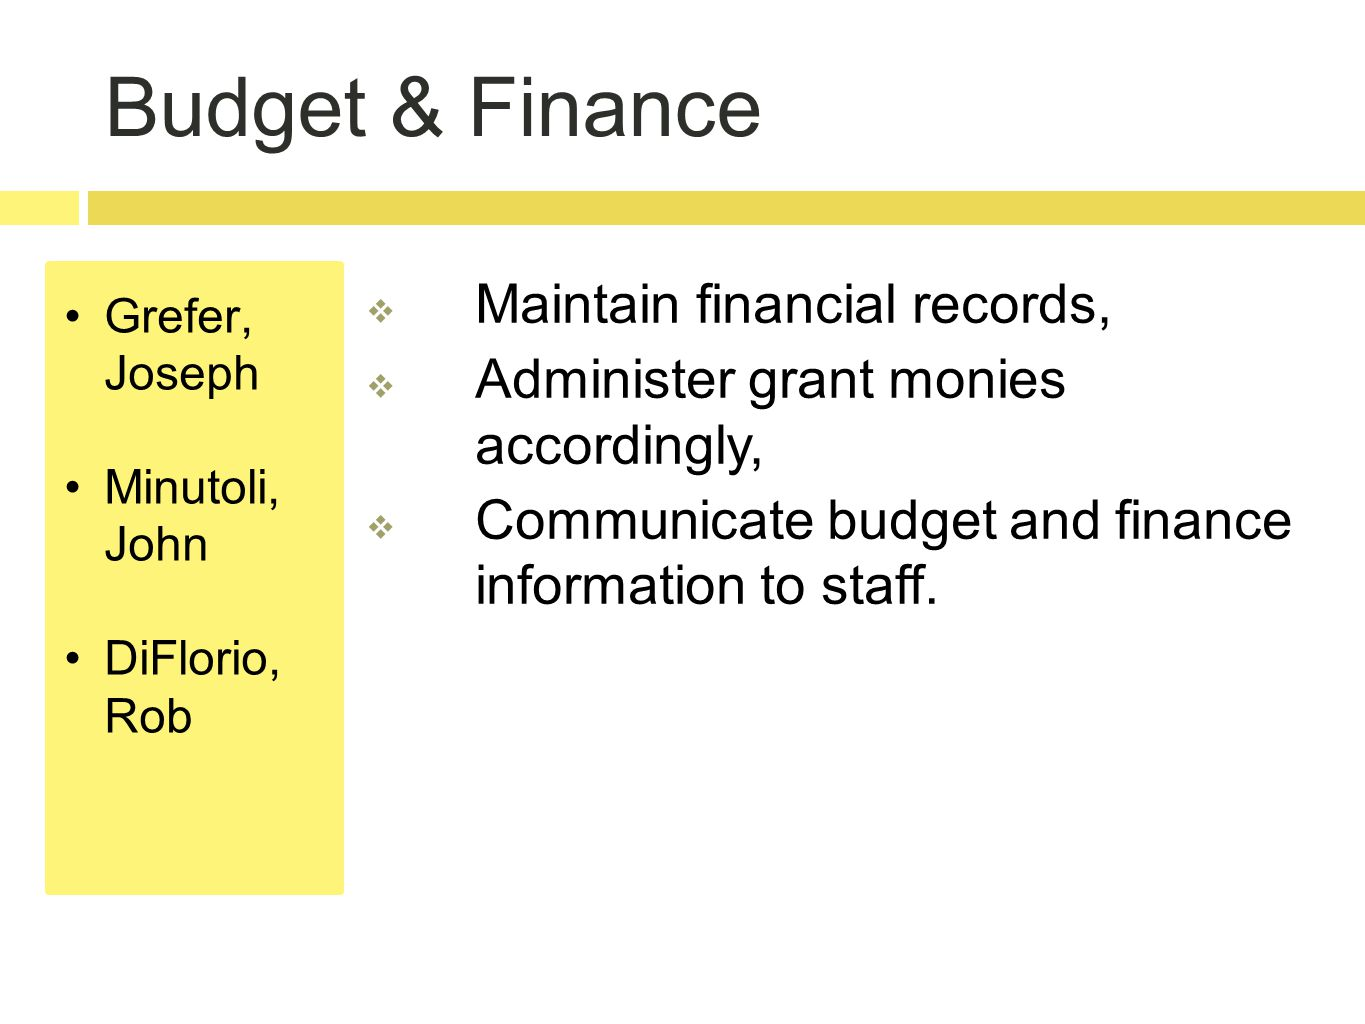 Budget & Finance Grefer, Joseph Minutoli, John DiFlorio, Rob  Maintain financial records,  Administer grant monies accordingly,  Communicate budget and finance information to staff.